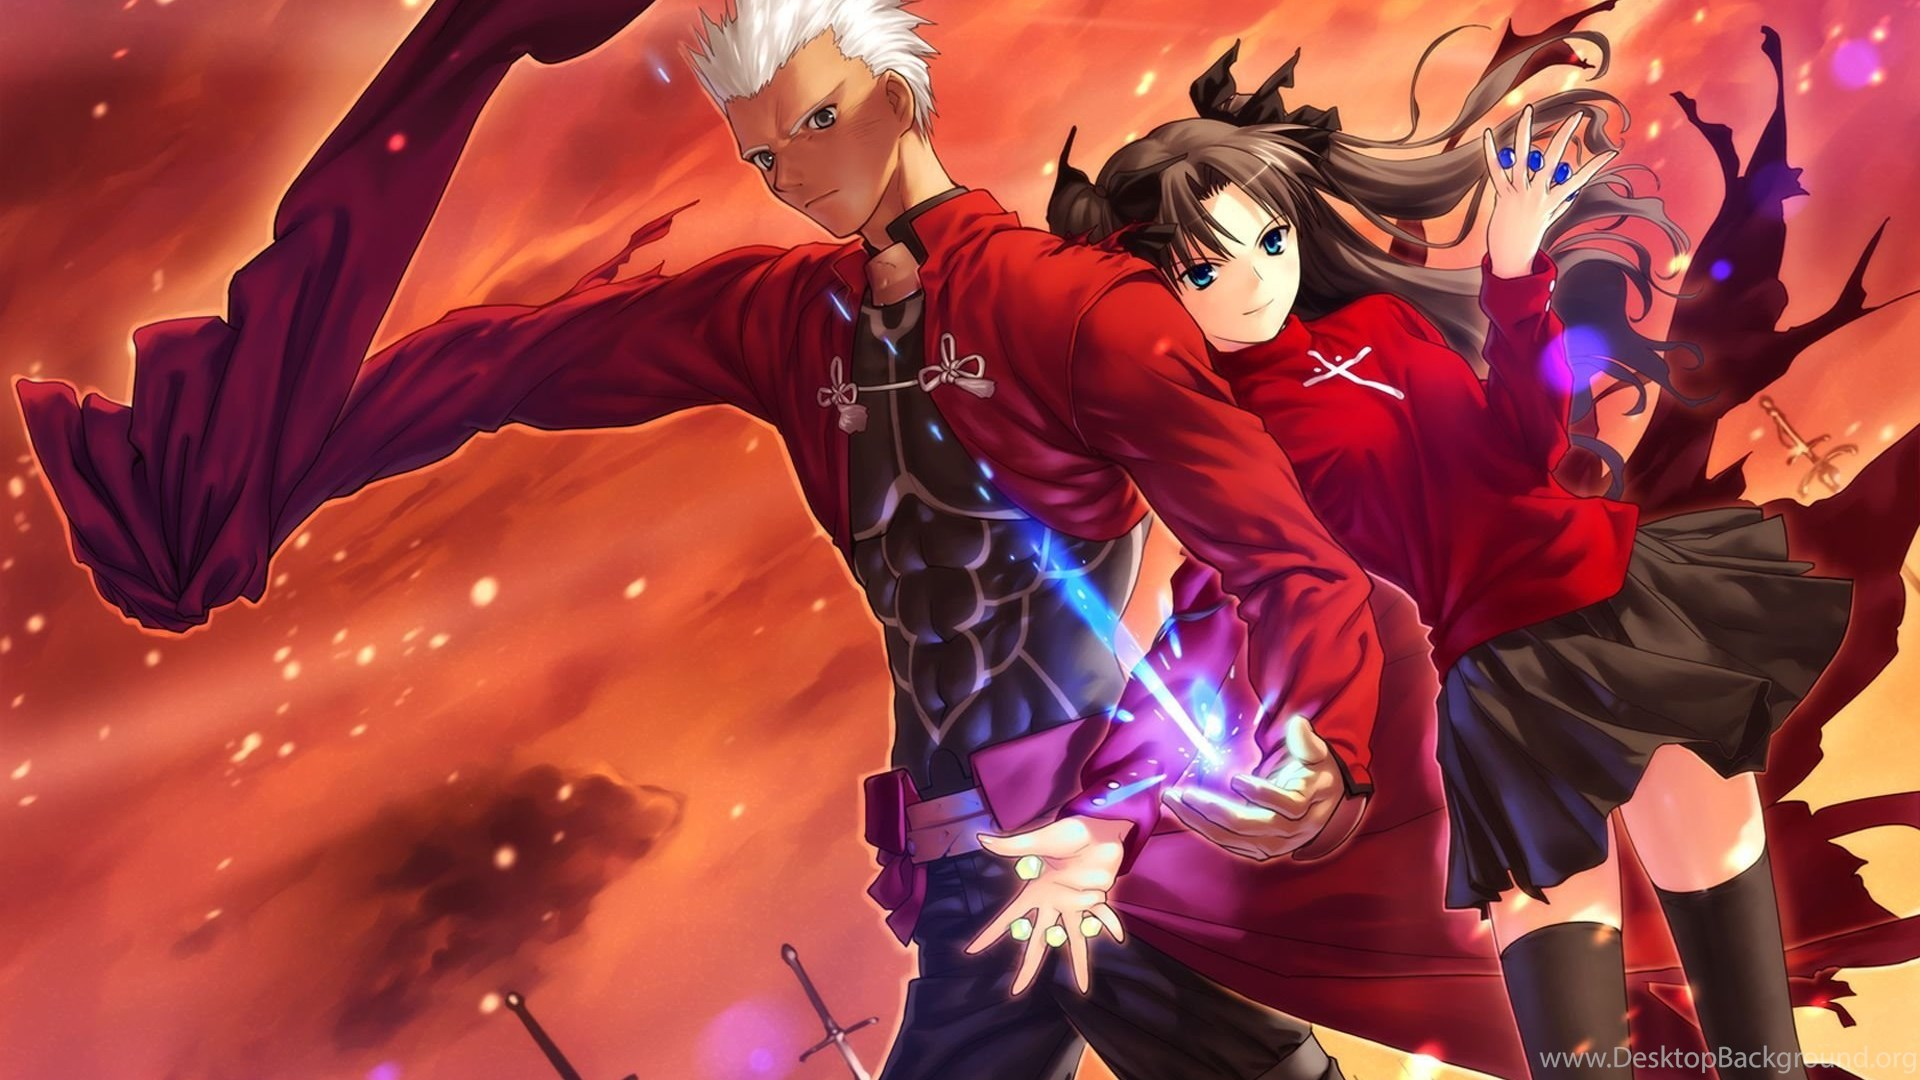 Fate Stay Night Hd Wallpapers Page 3 Desktop Background